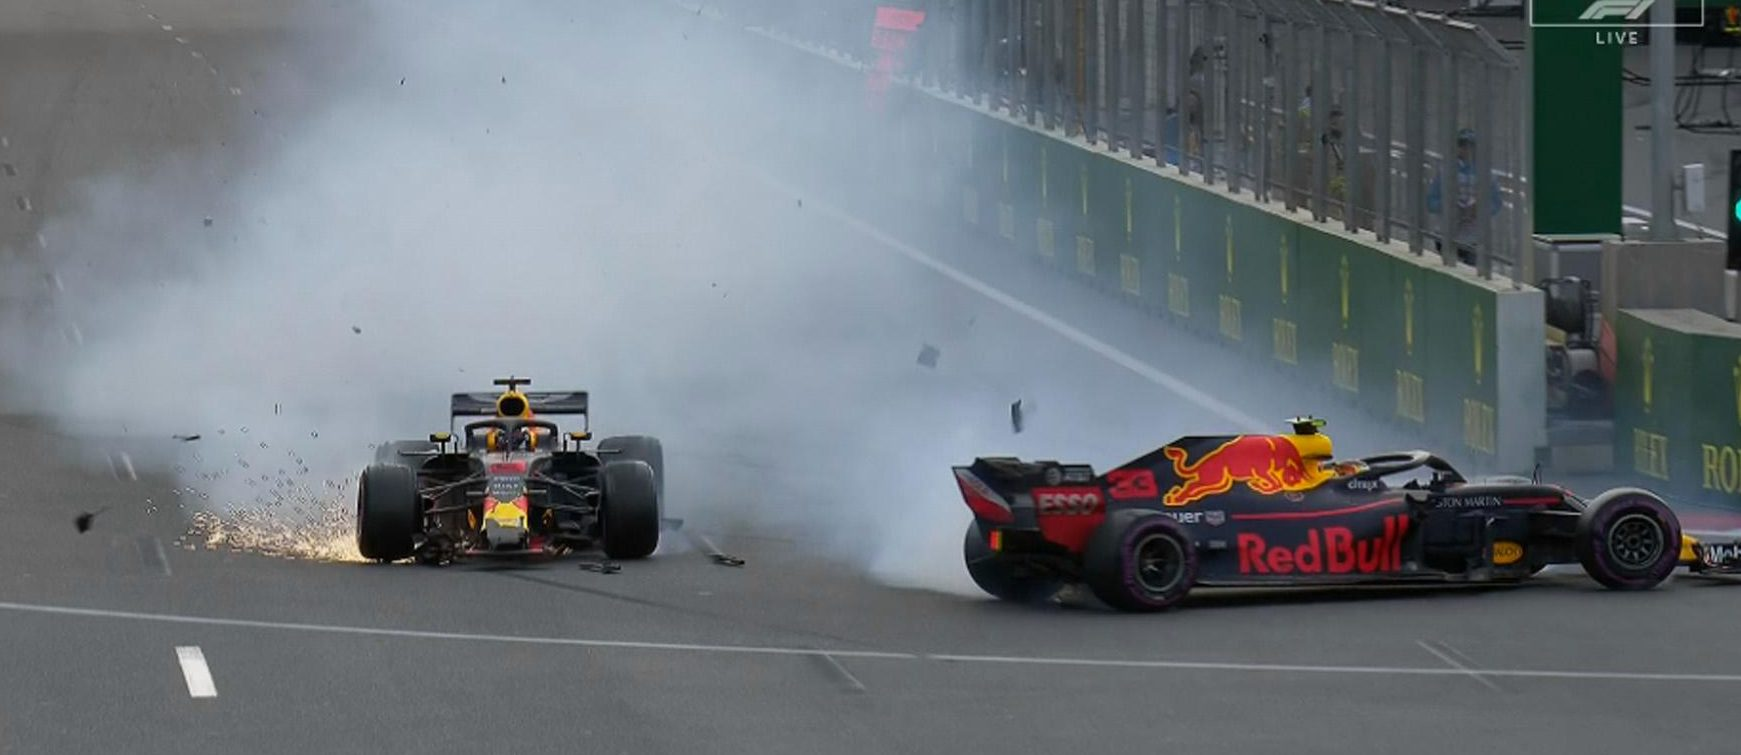 Red Bull were furious with the driving of Max Verstappen and Daniel Ricciardo